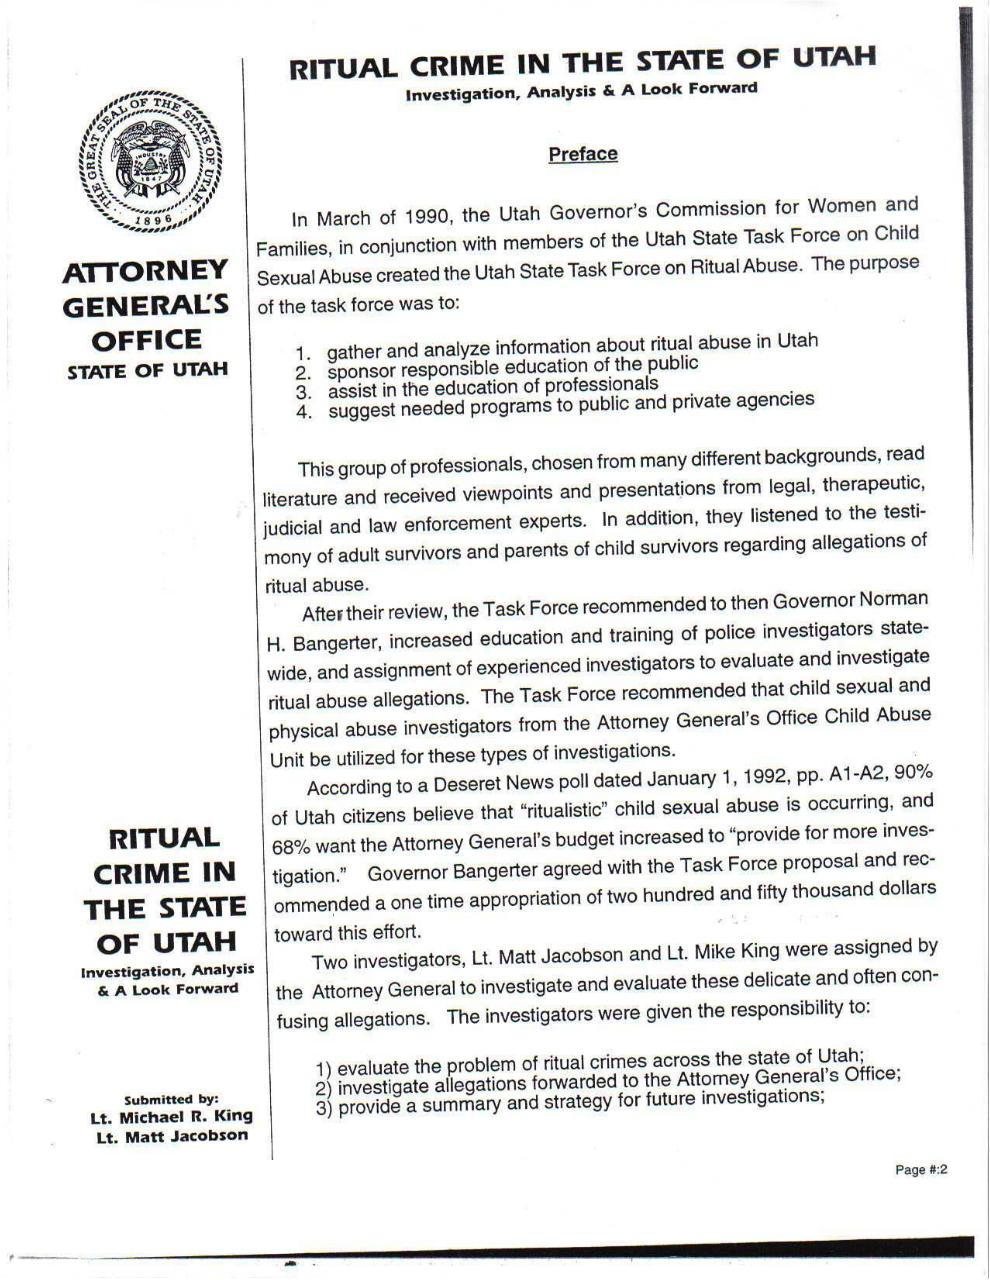 Ritual crime in the state of Utah 1992.pdf - page 3/60